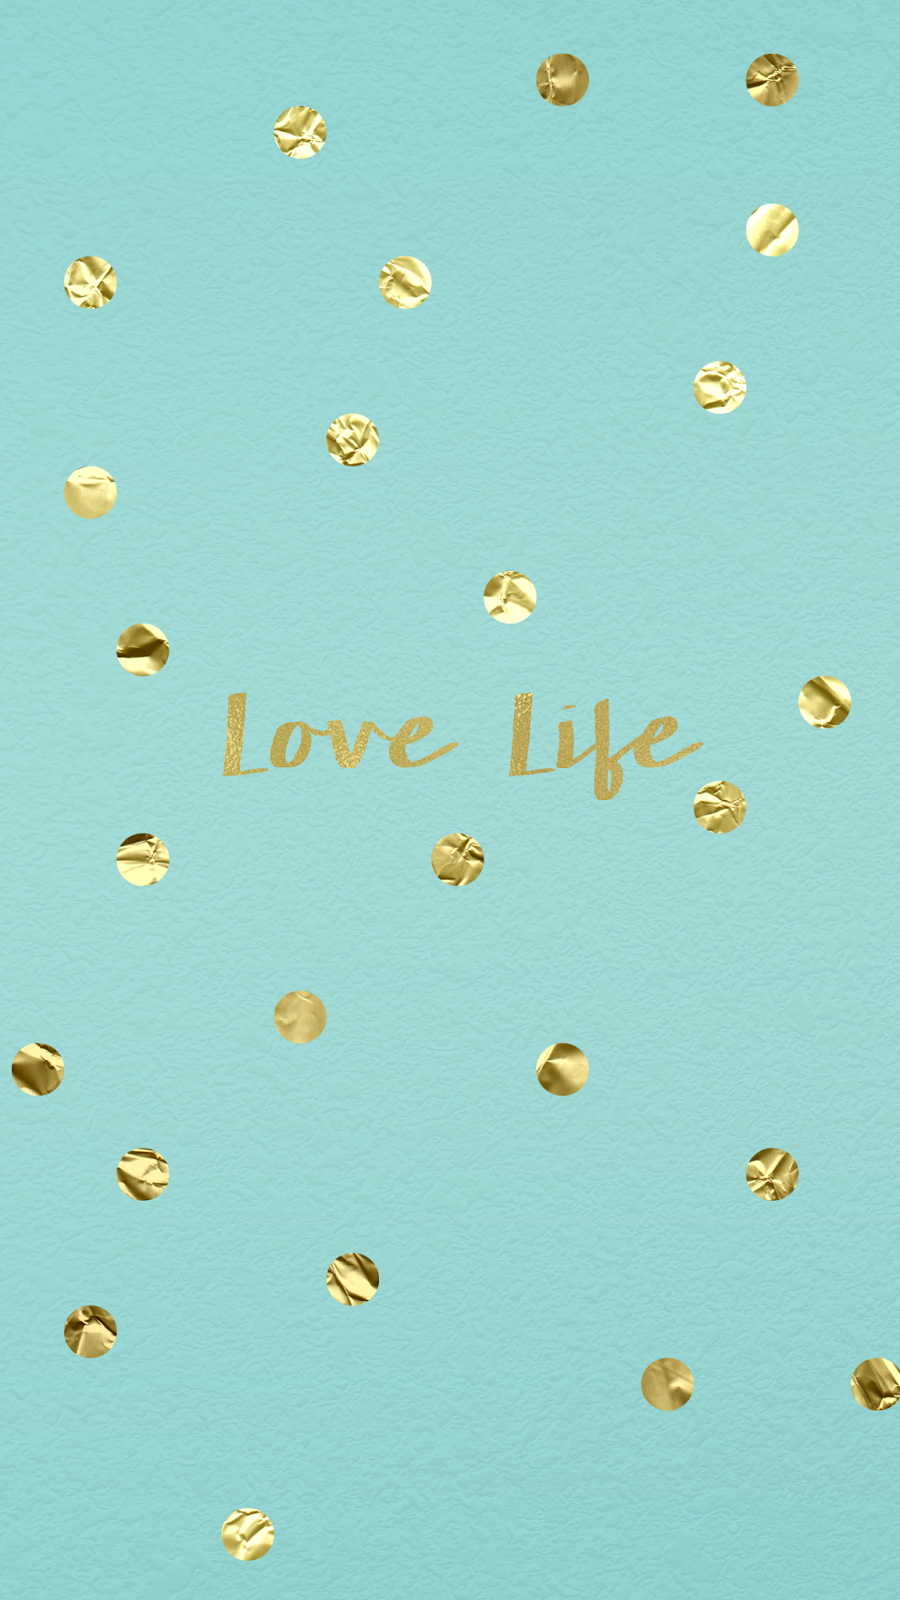 wallpaper, background, hd, iphone, gold, confetti, tiffany, blue, love, life | Happiness is ...